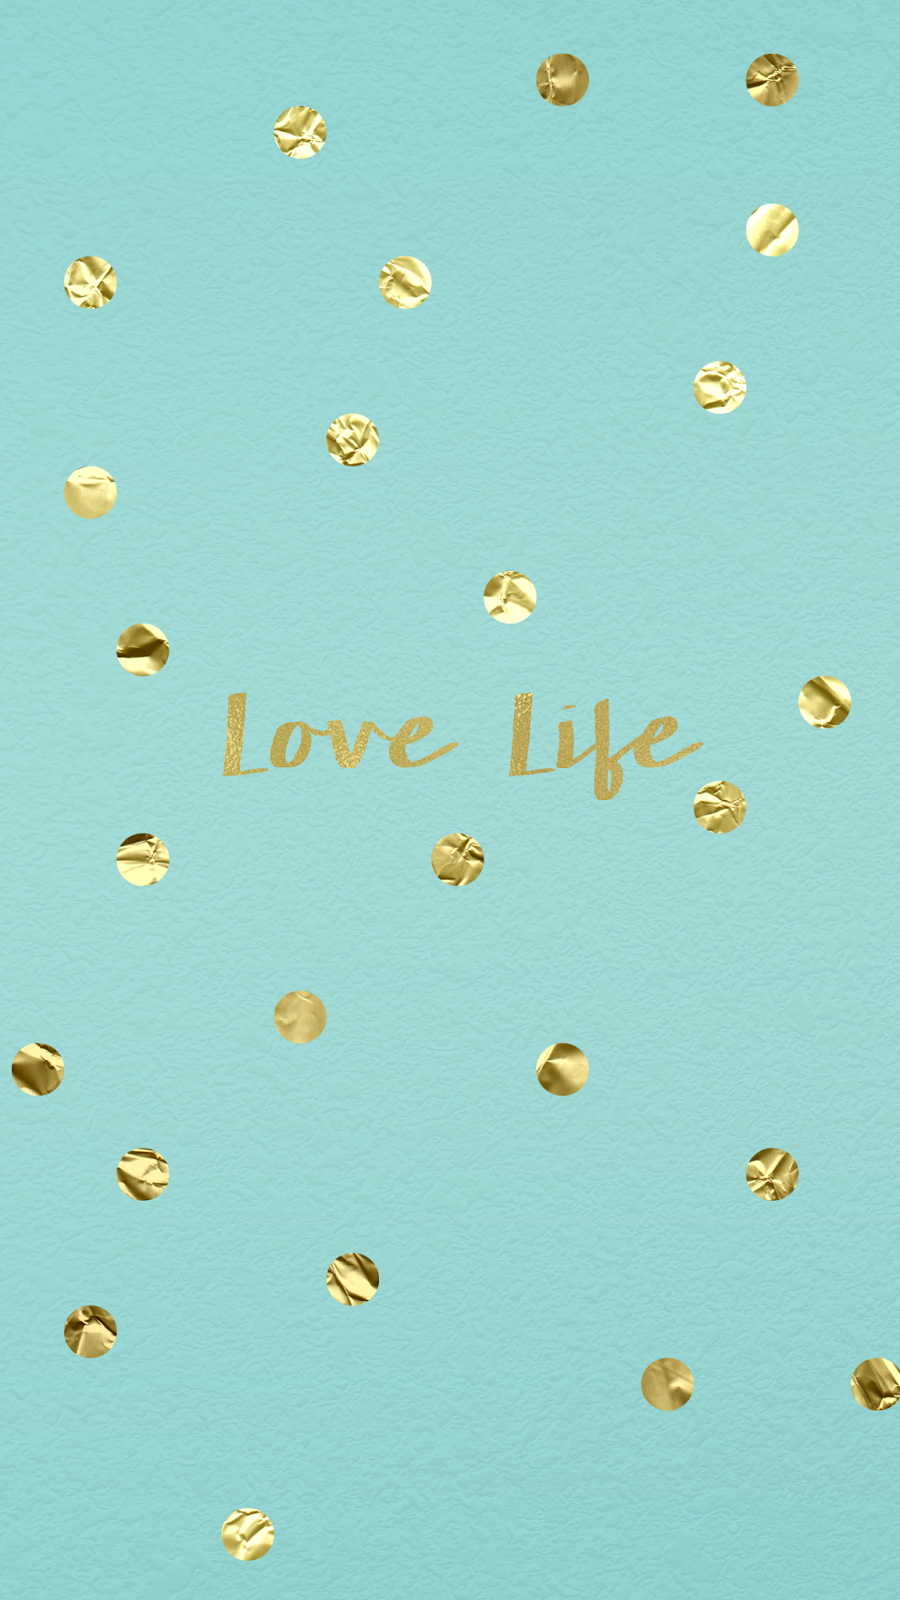 wallpaper, background, hd, iphone, gold, confetti, tiffany, blue, love, life | Happiness is ...